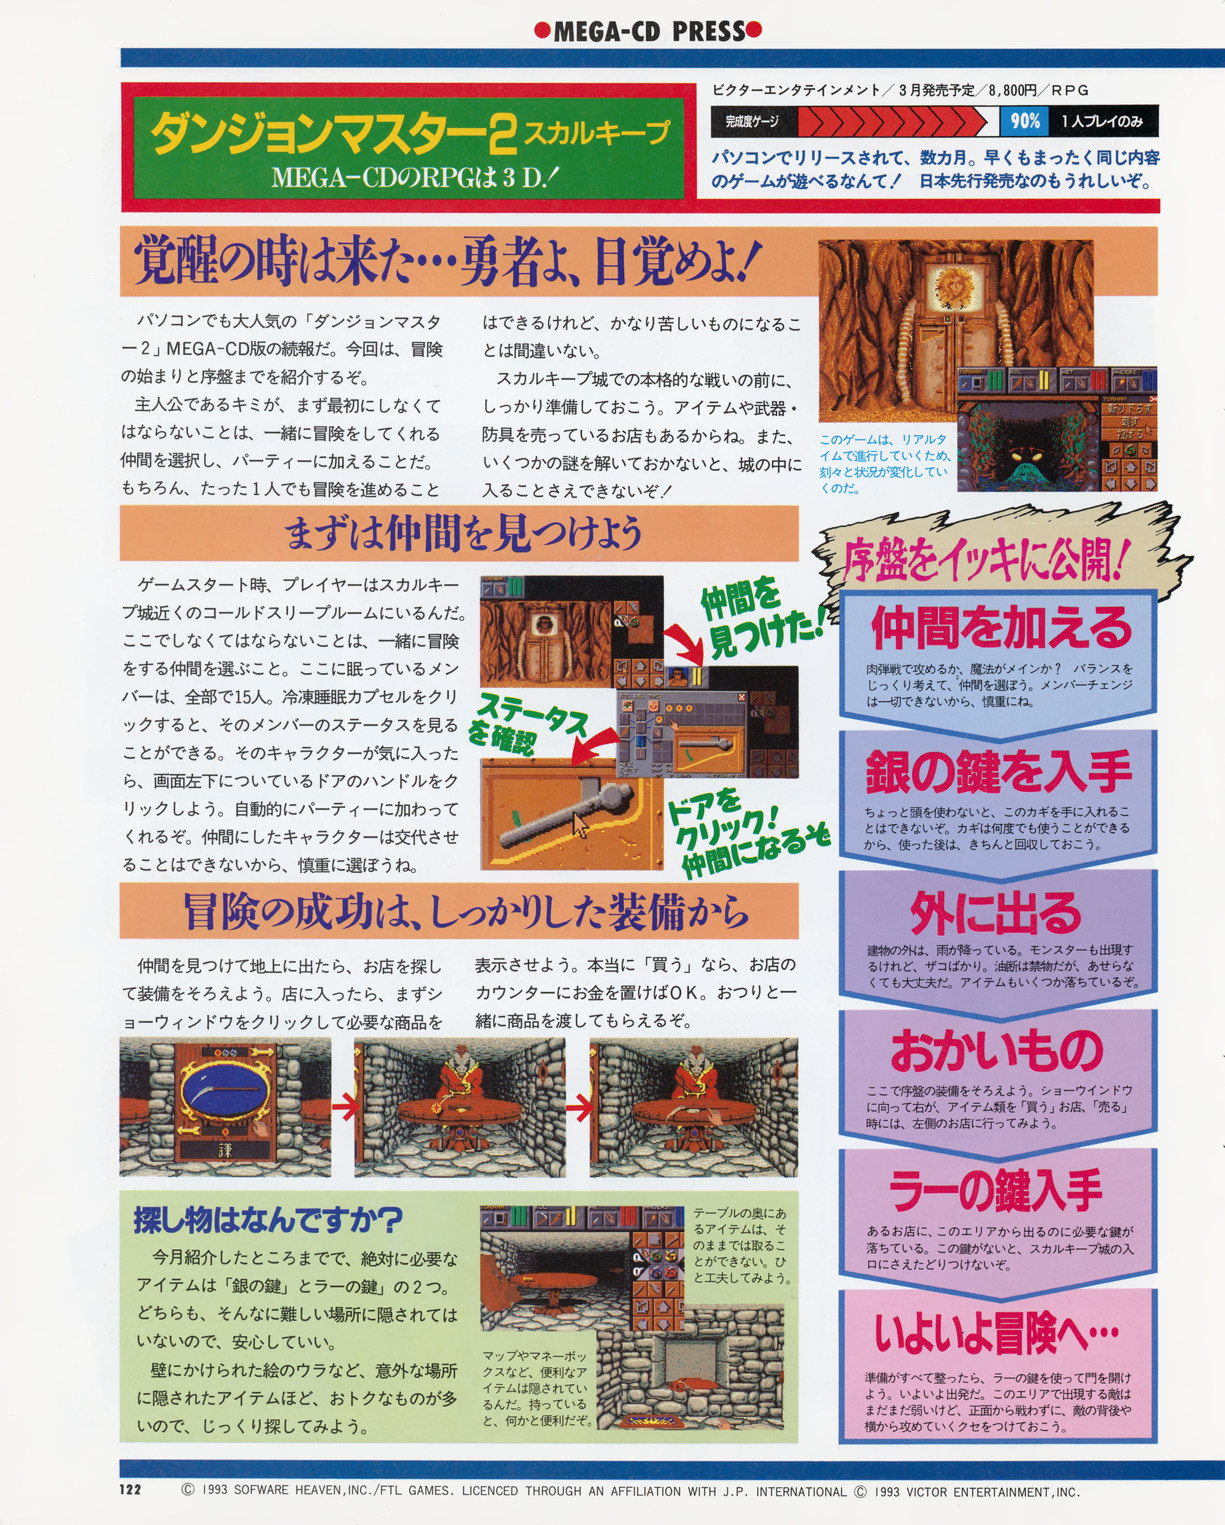 Dungeon Master II for Mega CD Preview published in Japanese magazine 'Beep! MegaDrive', March 1994, Page 122